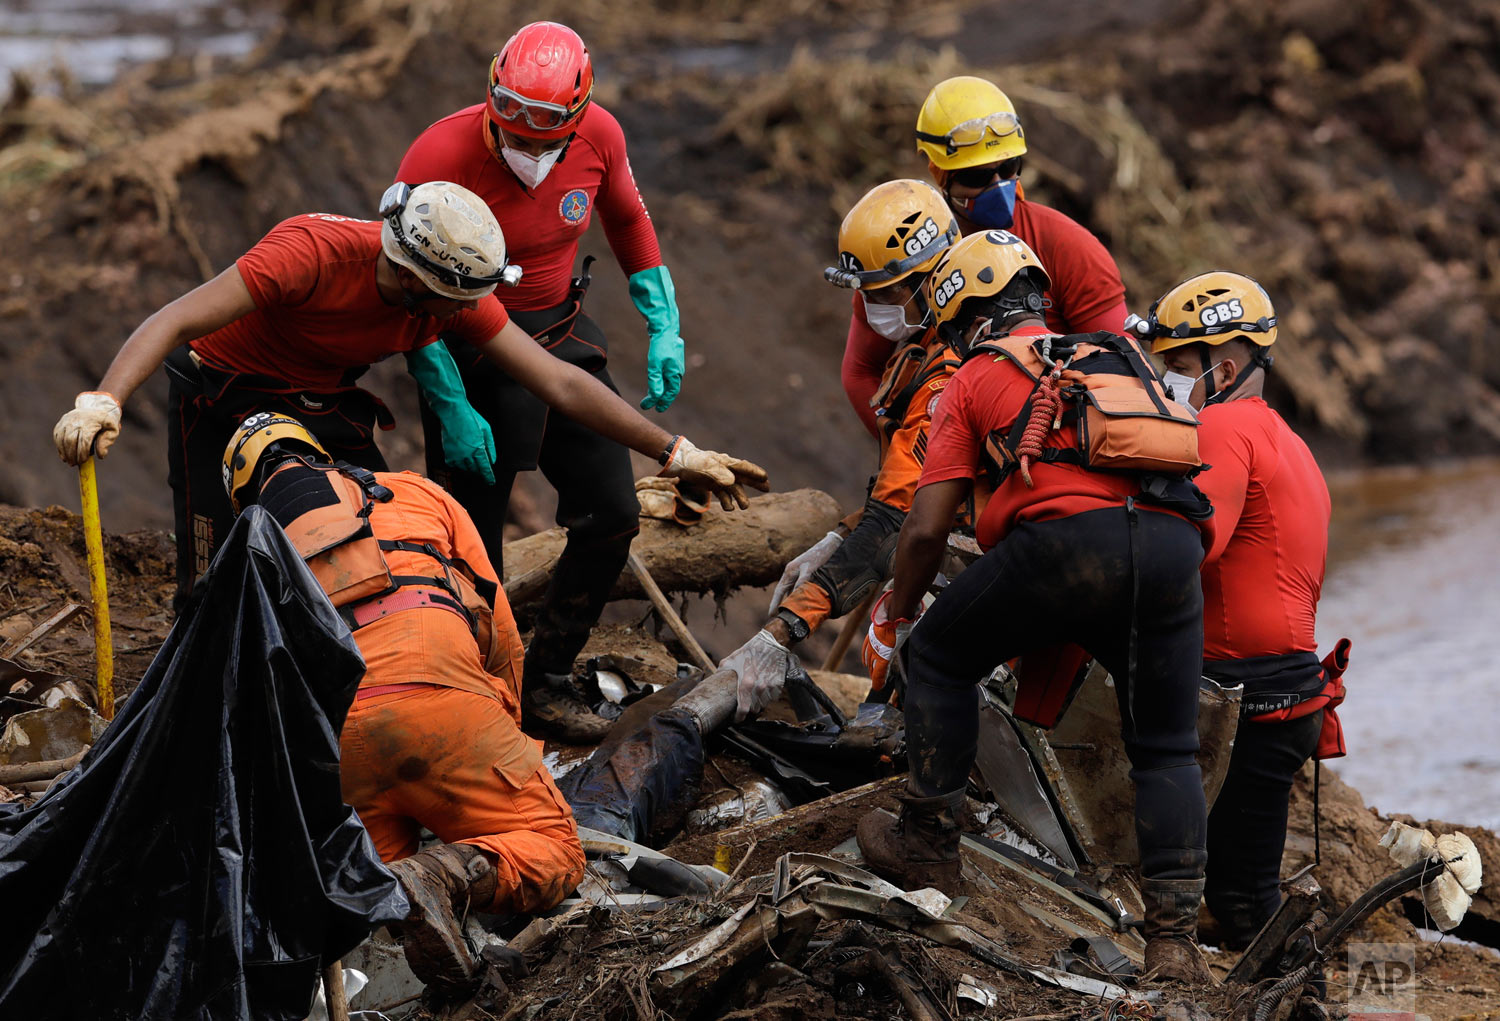 Firefighters pull a body from the mud days after the Vale mining company's dam collapsed in Brumadinho, Brazil, Jan. 28, 2019. (AP Photo/Leo Correa)